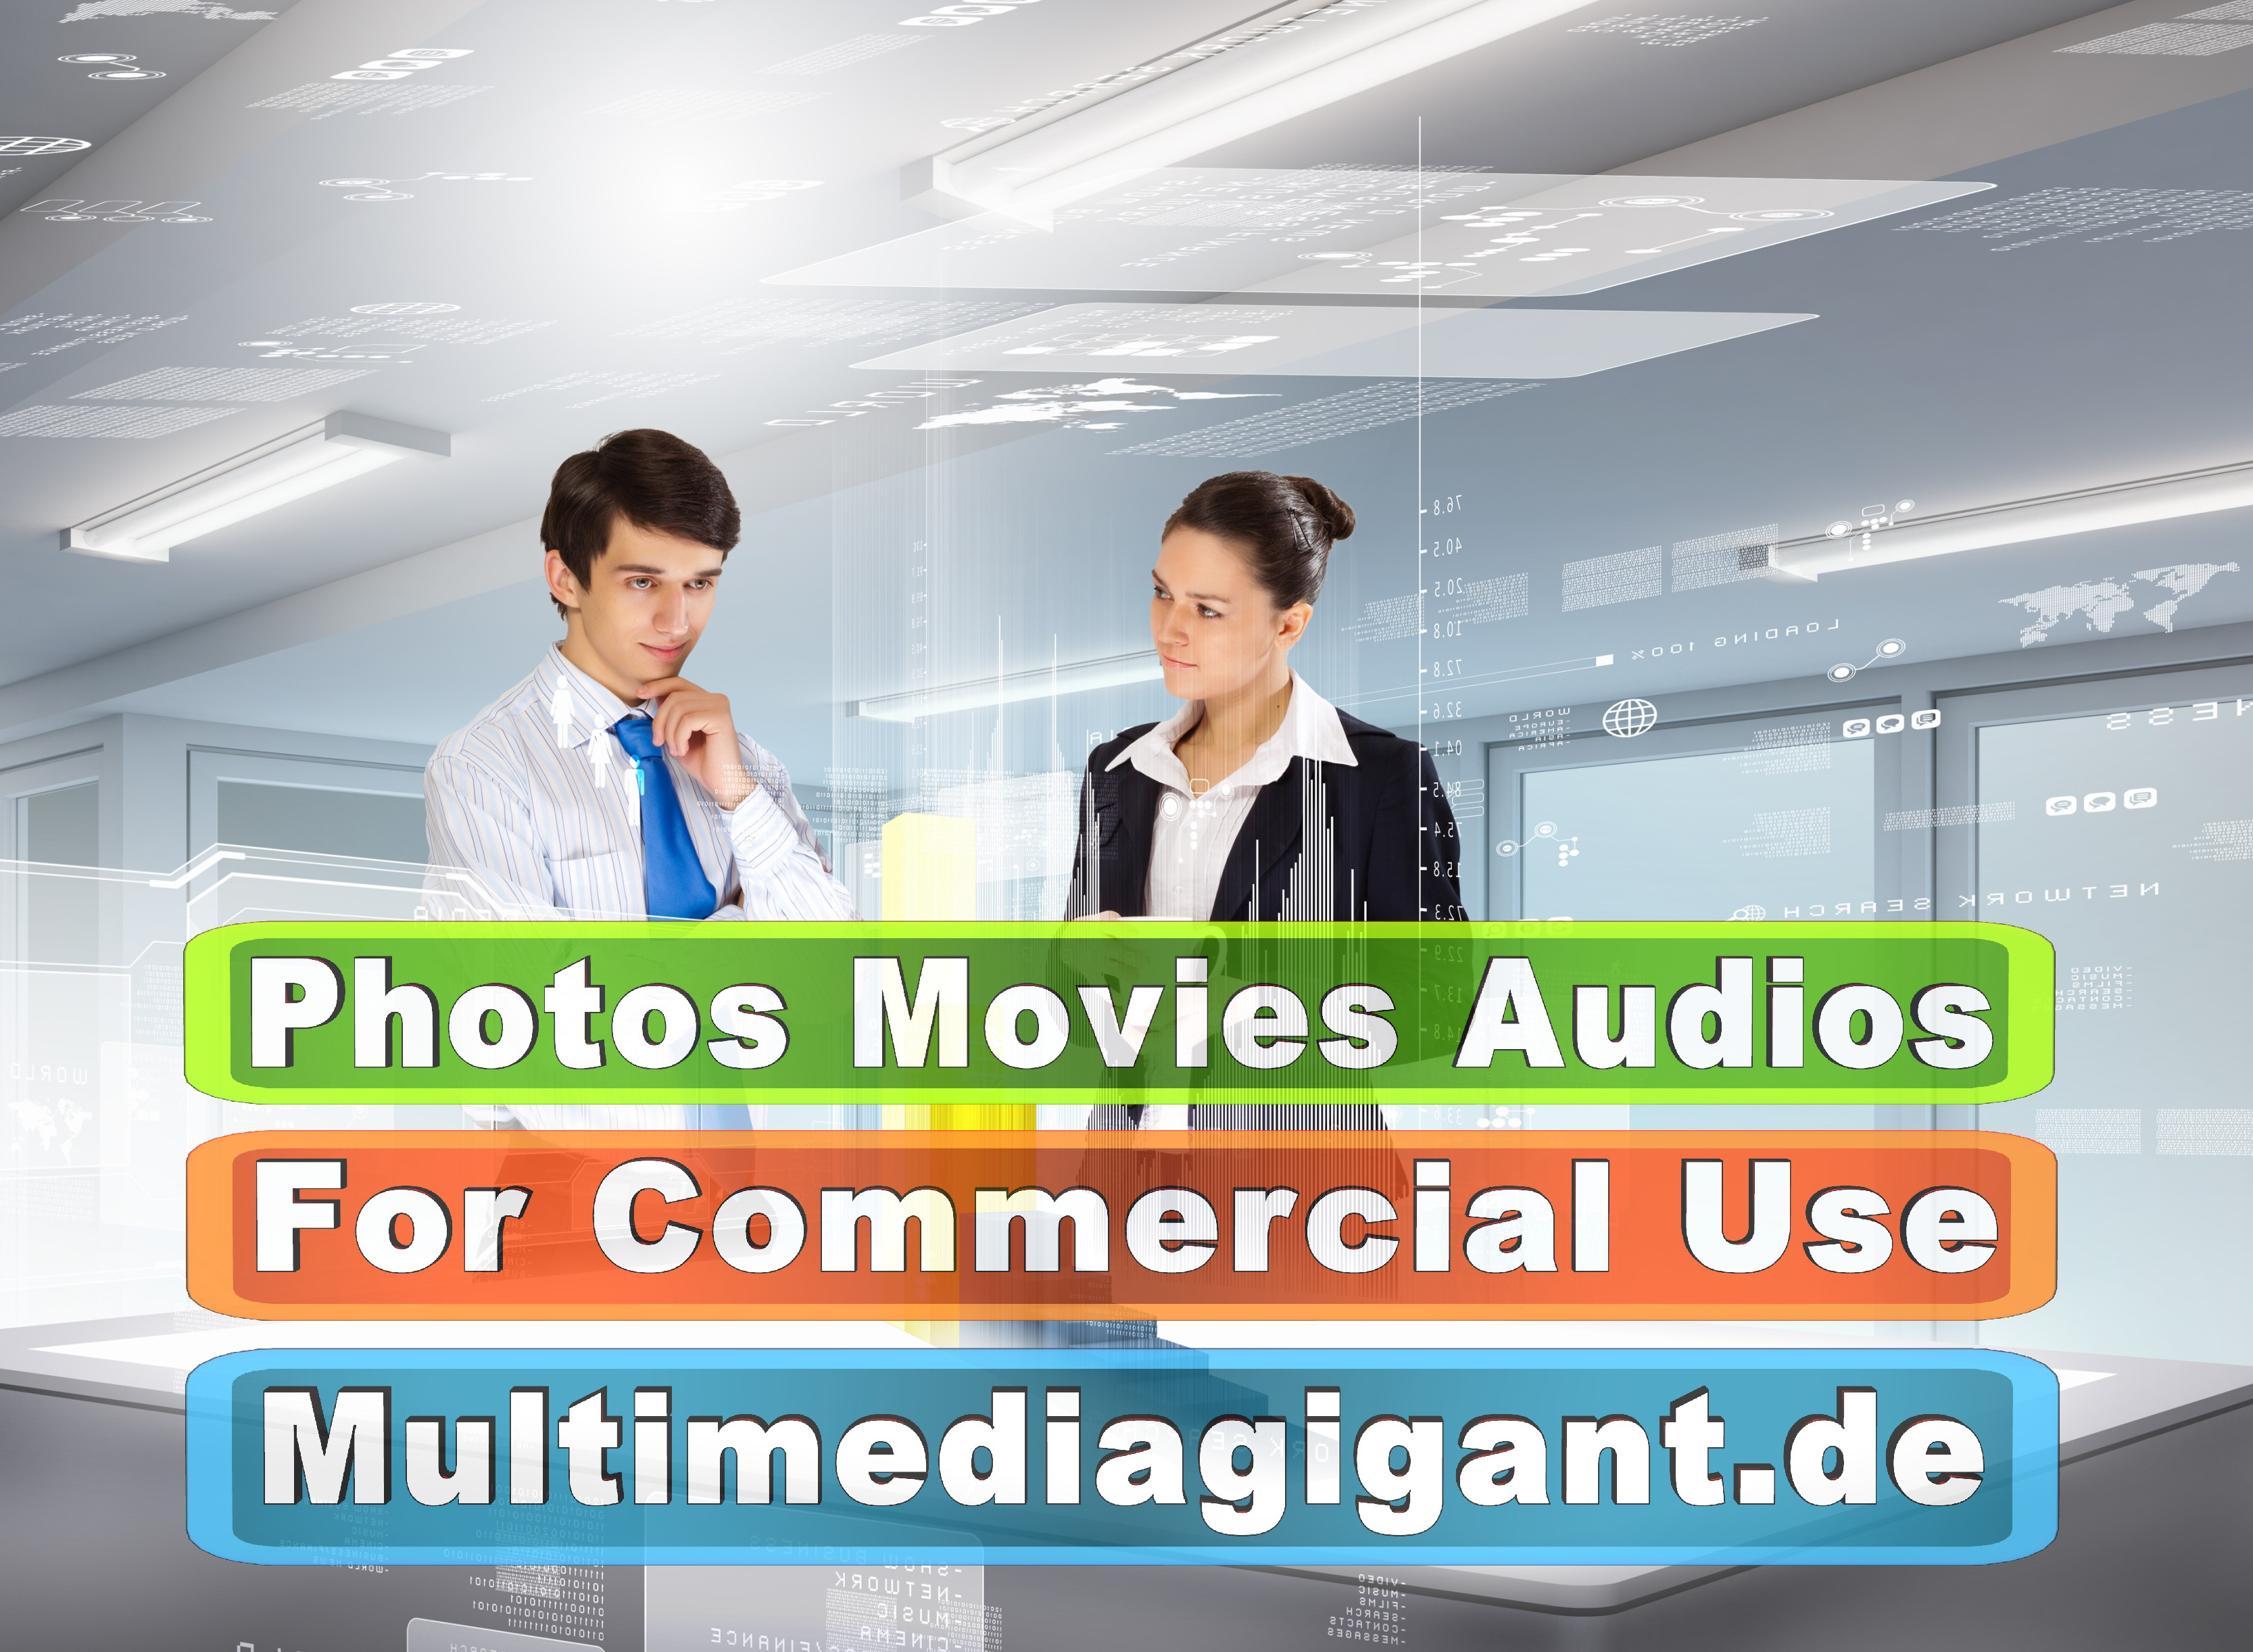 Royalty Free Stock Photos For Commercial Use